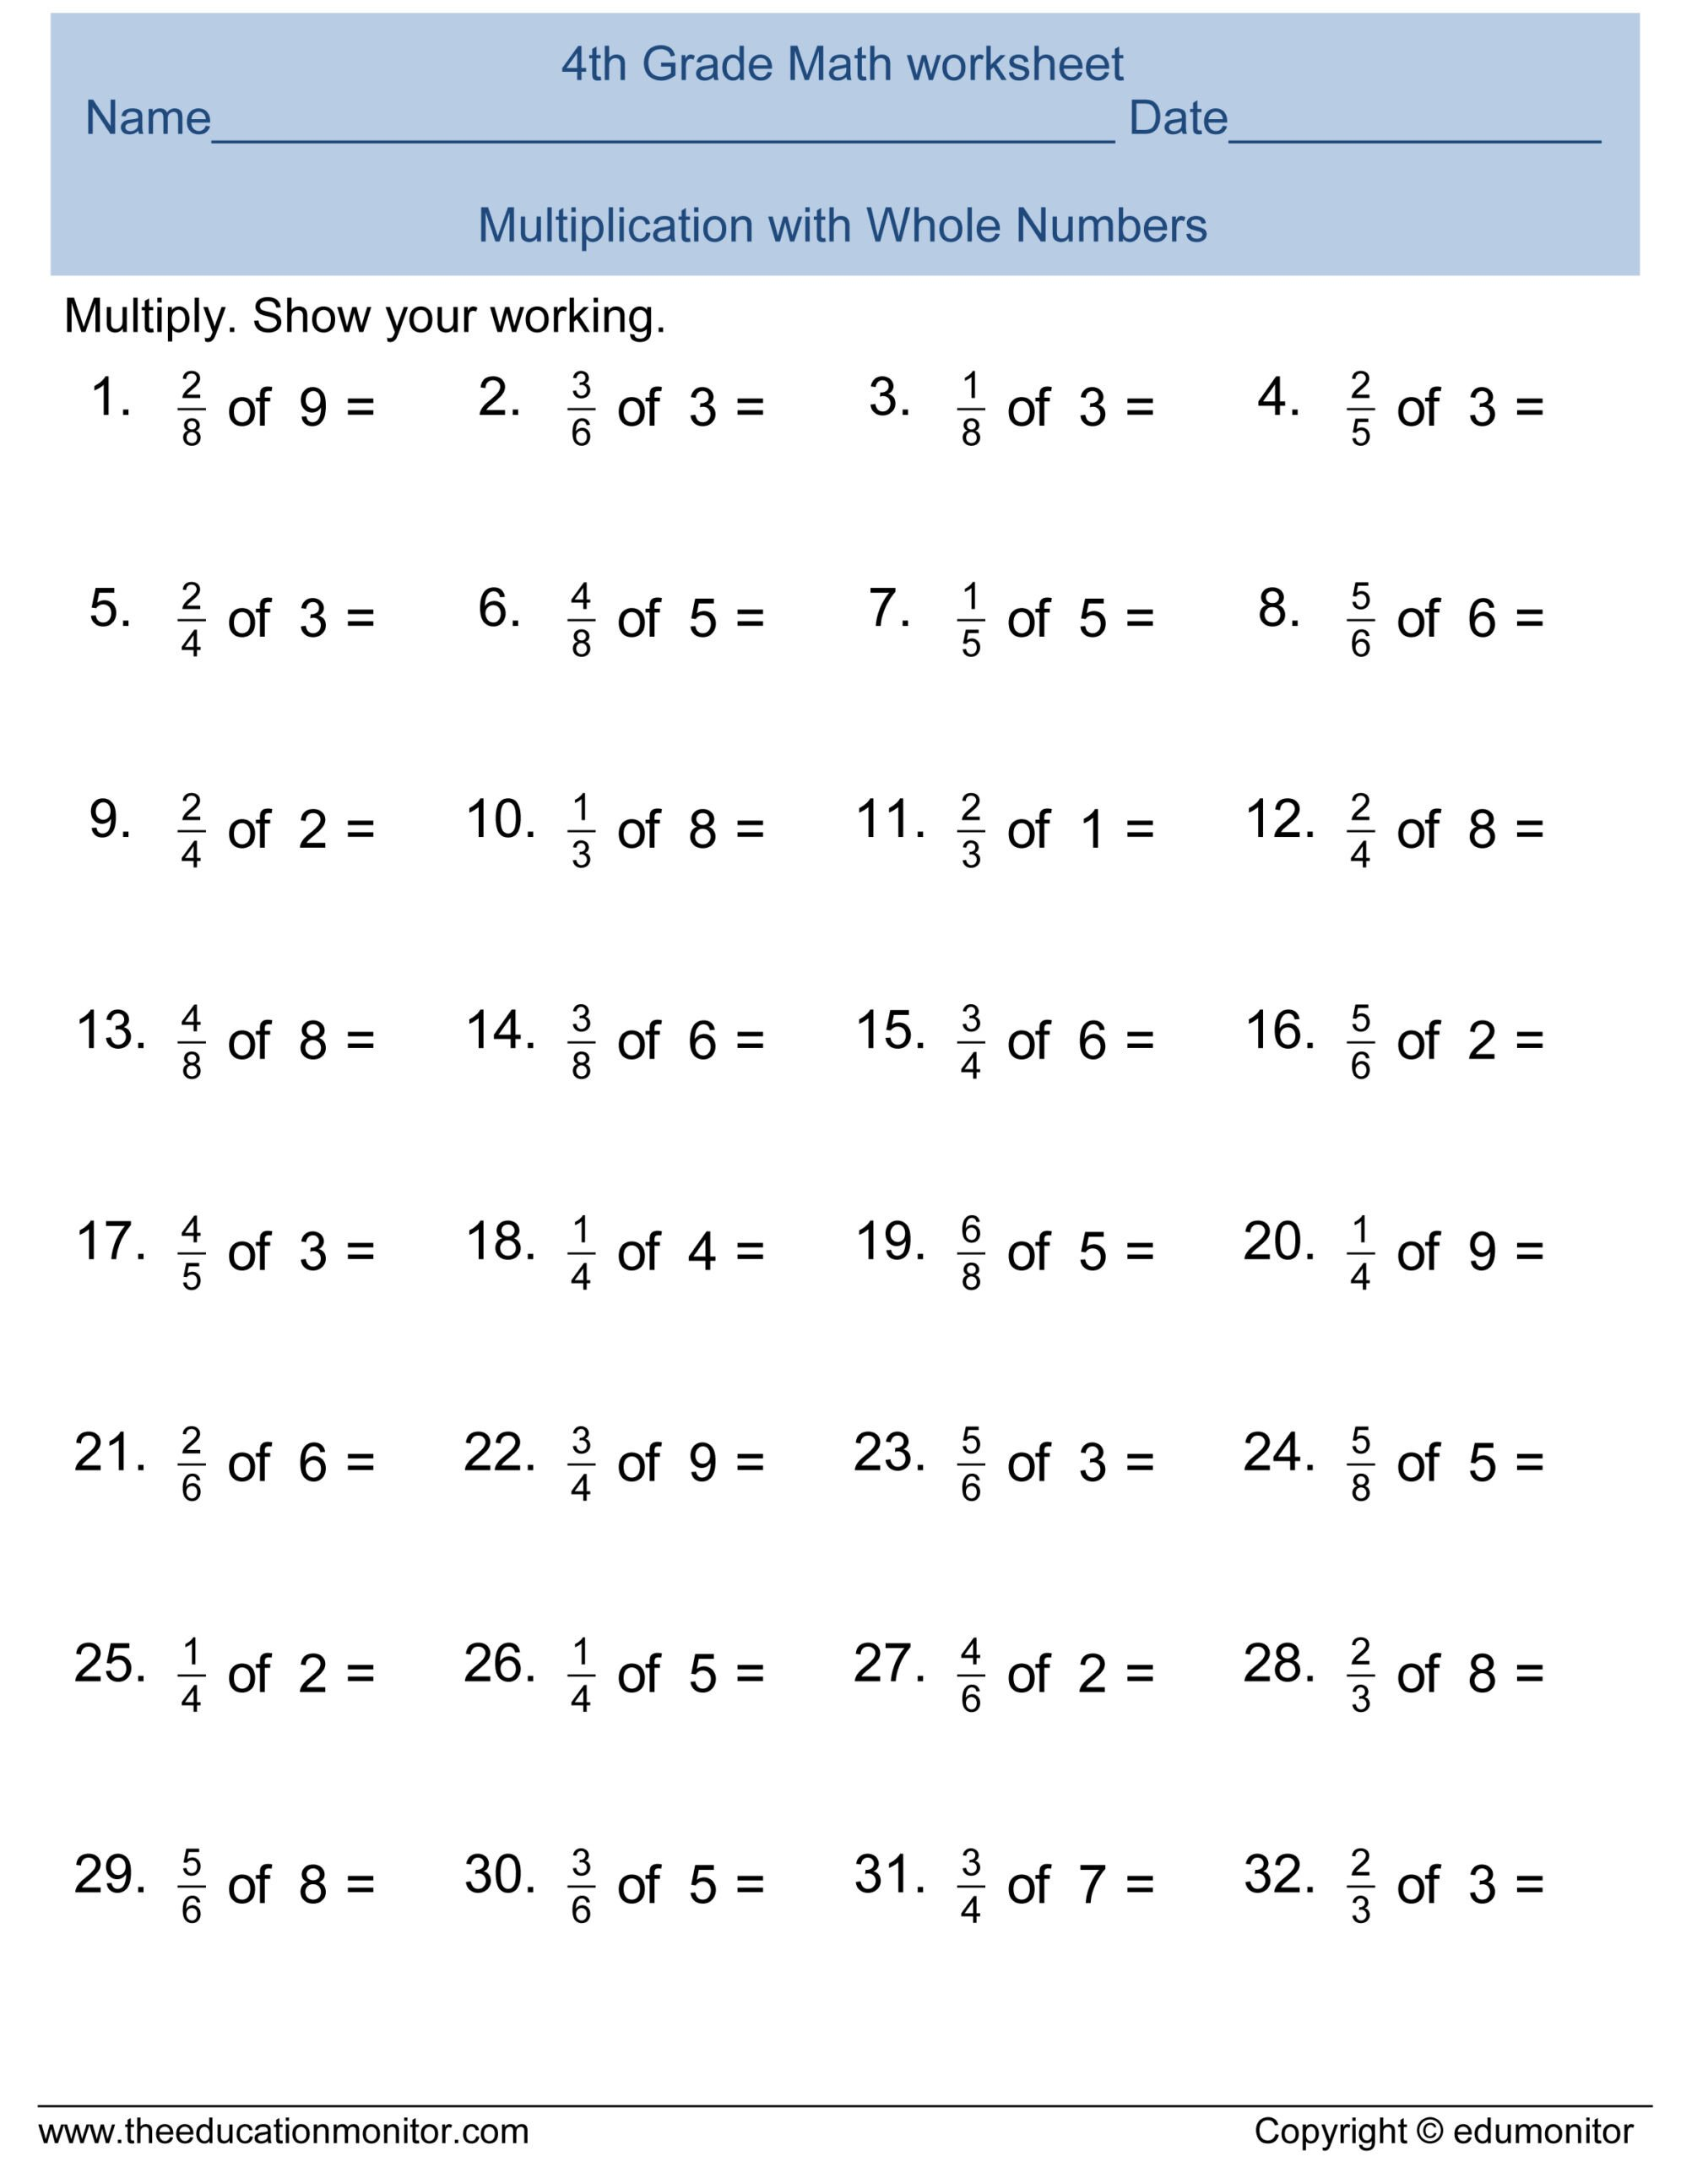 Abeka 3rd Grade Math Worksheets Free 4th Grade Fractions Math Worksheets and Printables